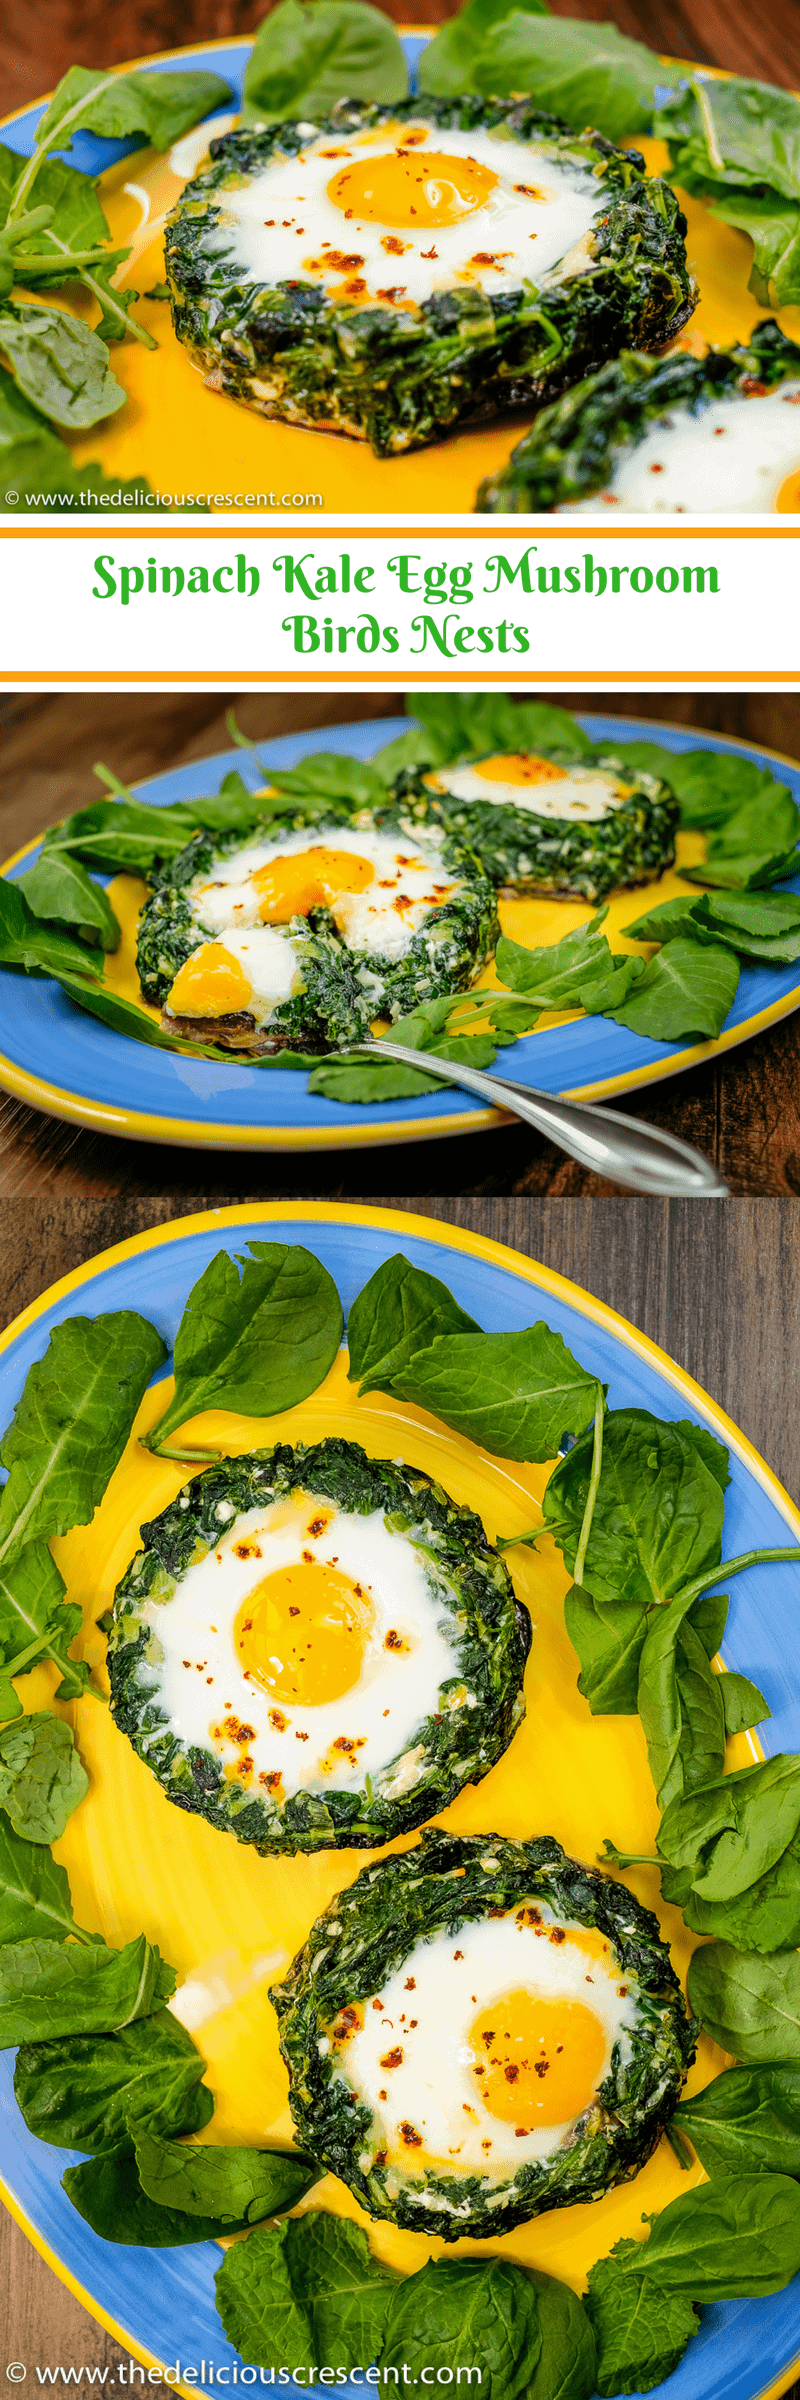 Spinach Kale Egg Mushroom Birds Nests – a nourishing, filling, low carb, super tasty egg and veggie dish loaded with protein, fiber, potassium.